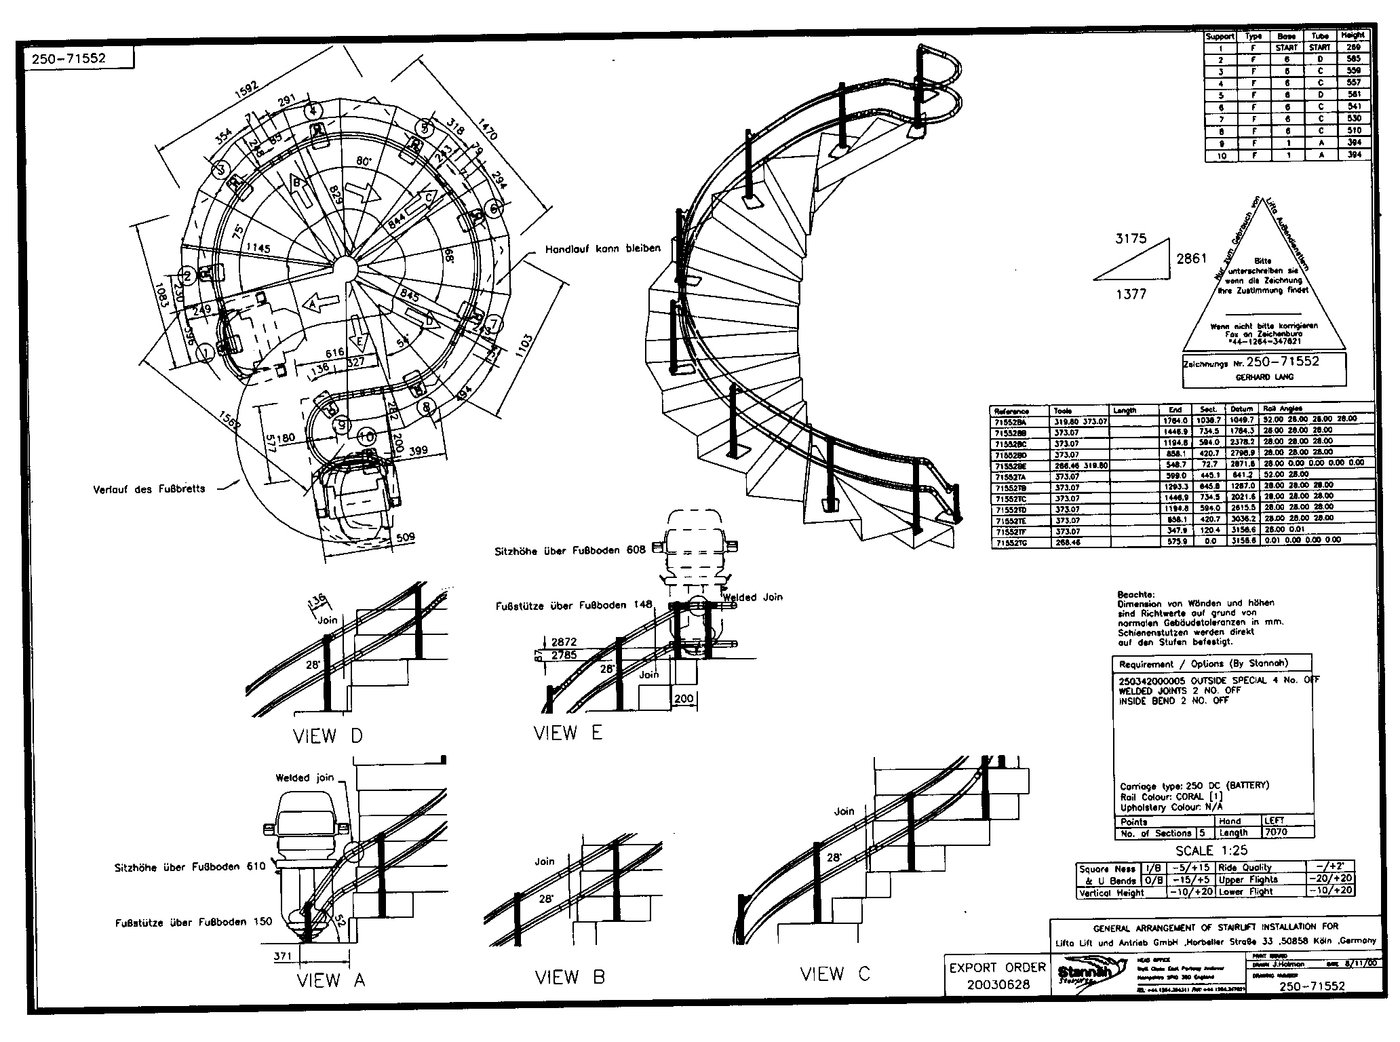 Stannah 420 Wiring Diagram 26 Images Jlg 2632e2 Large 69636 3uphafxbtvnwbjp5s20u2mf D Stairlift At Highcare